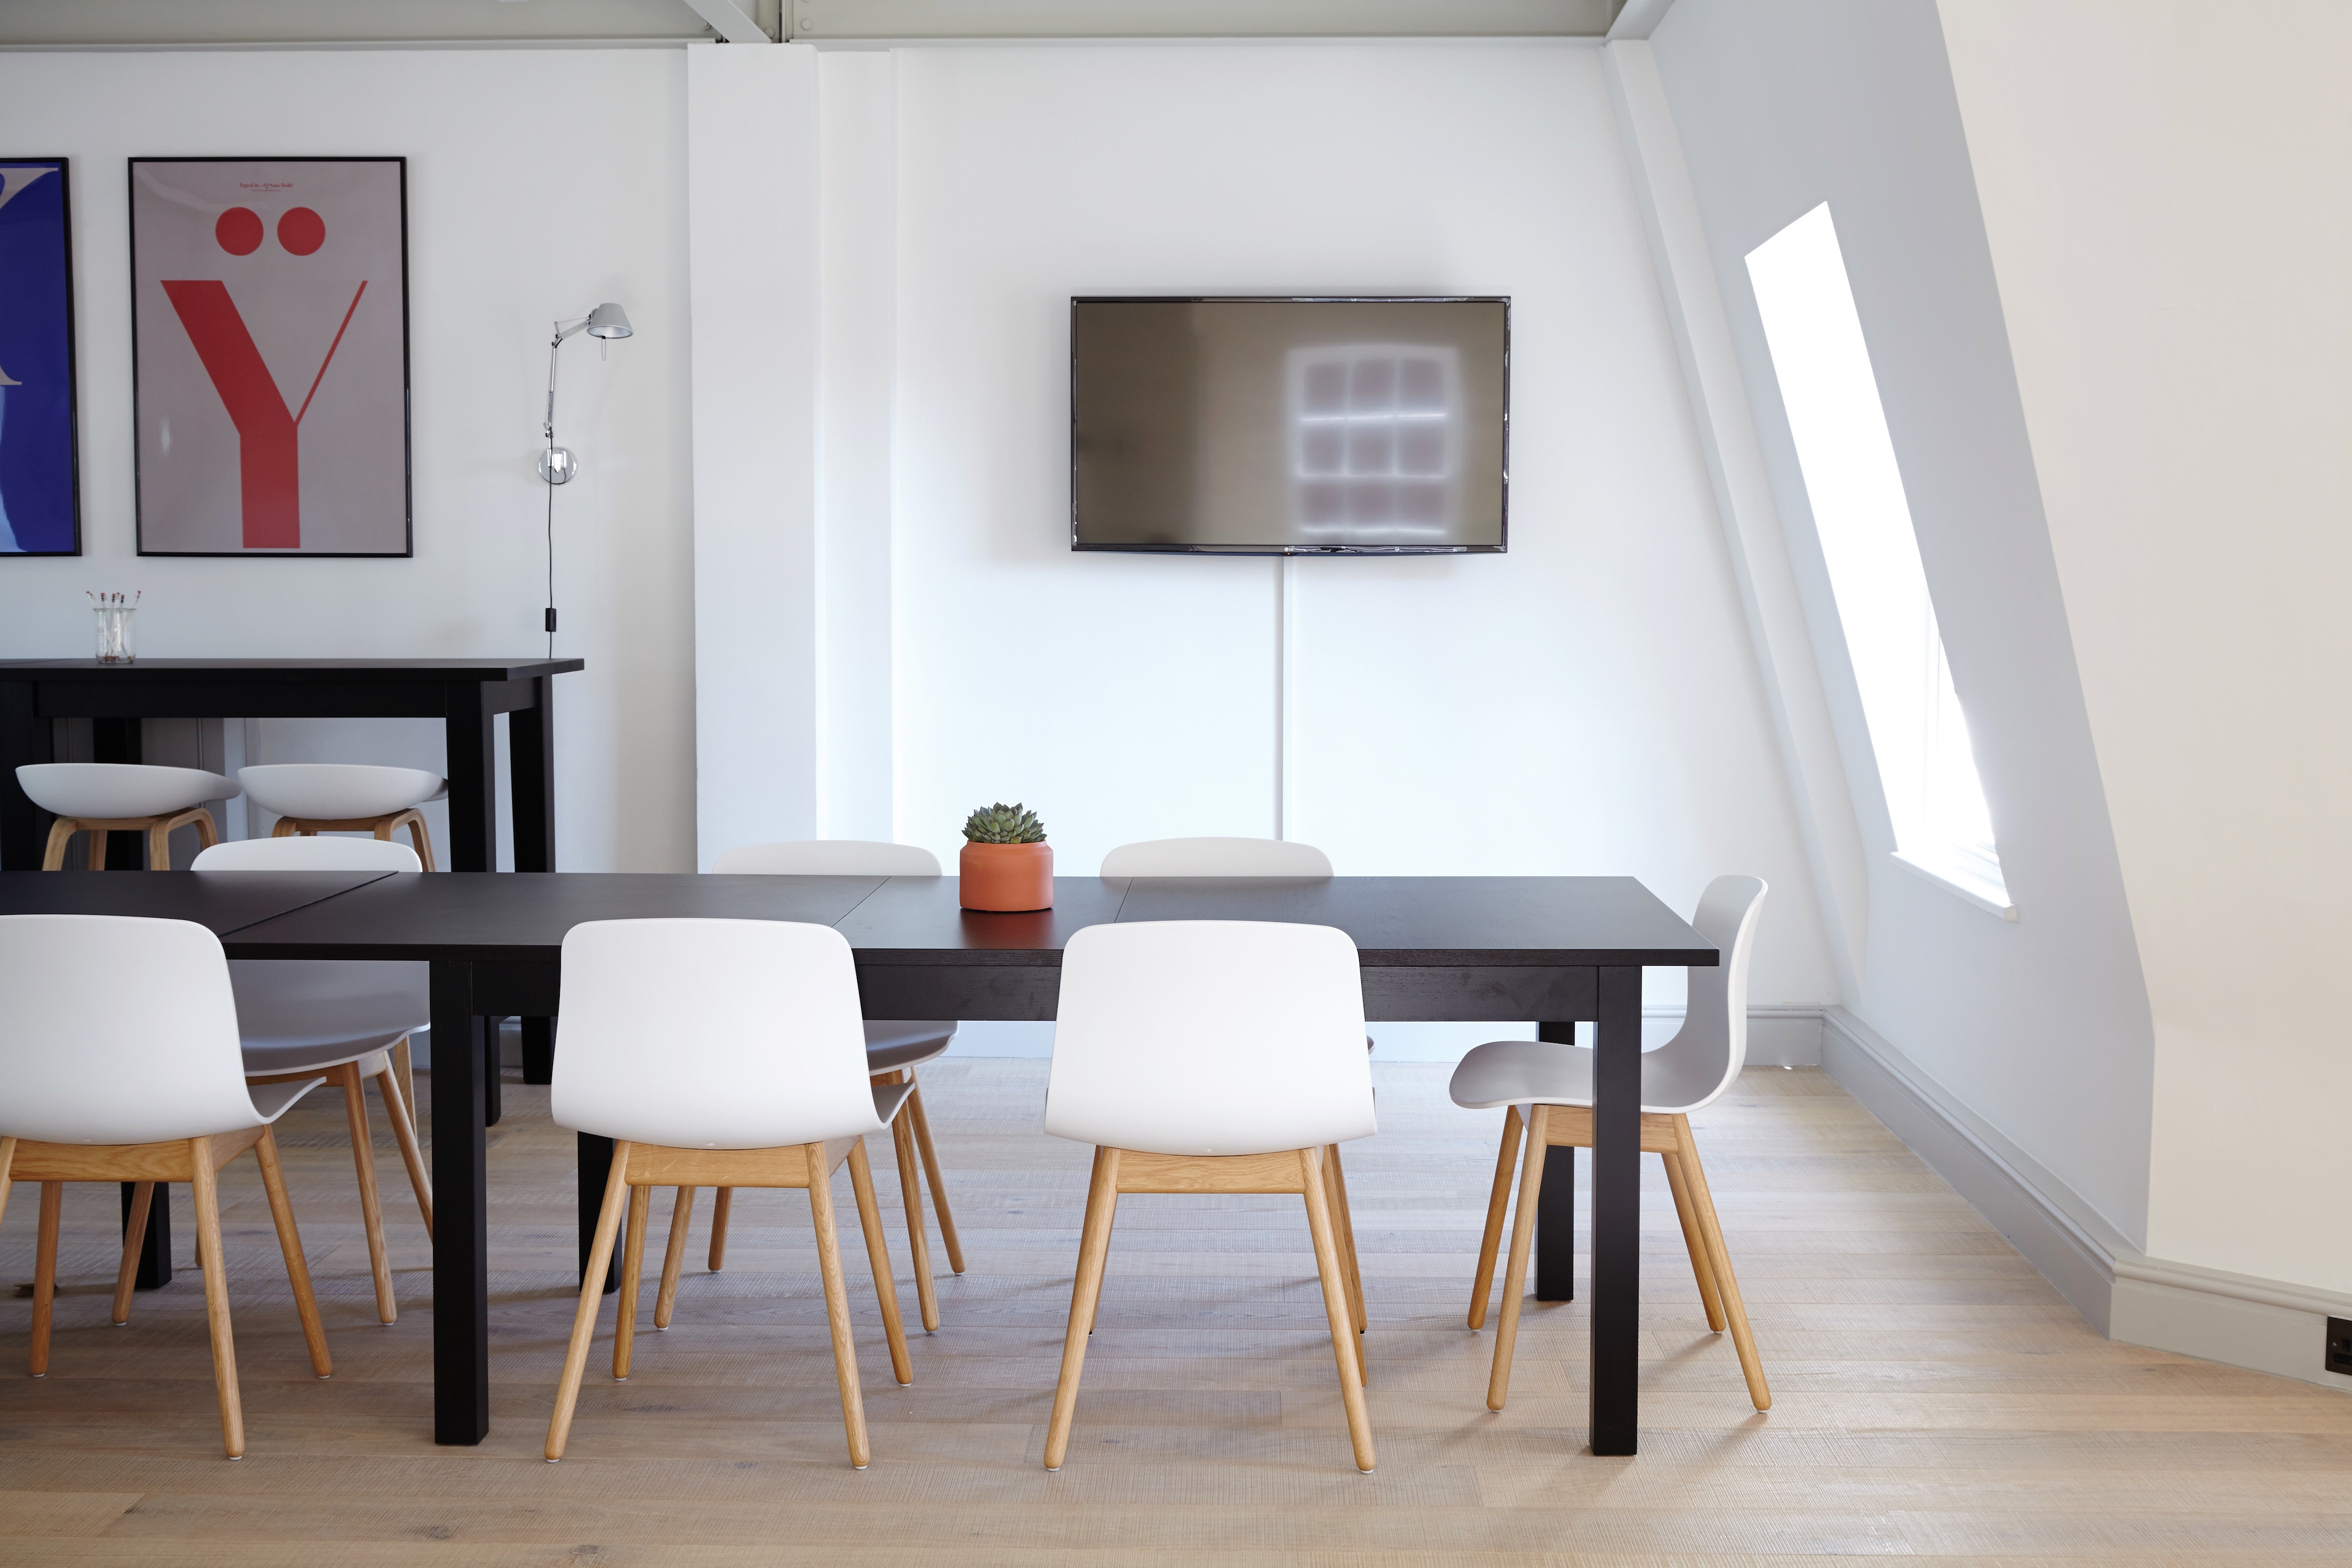 When it Comes to Open Houses, Less is More. Learn How to Declutter Your Home, Attract More Bidders and Boost Your Sale Price.